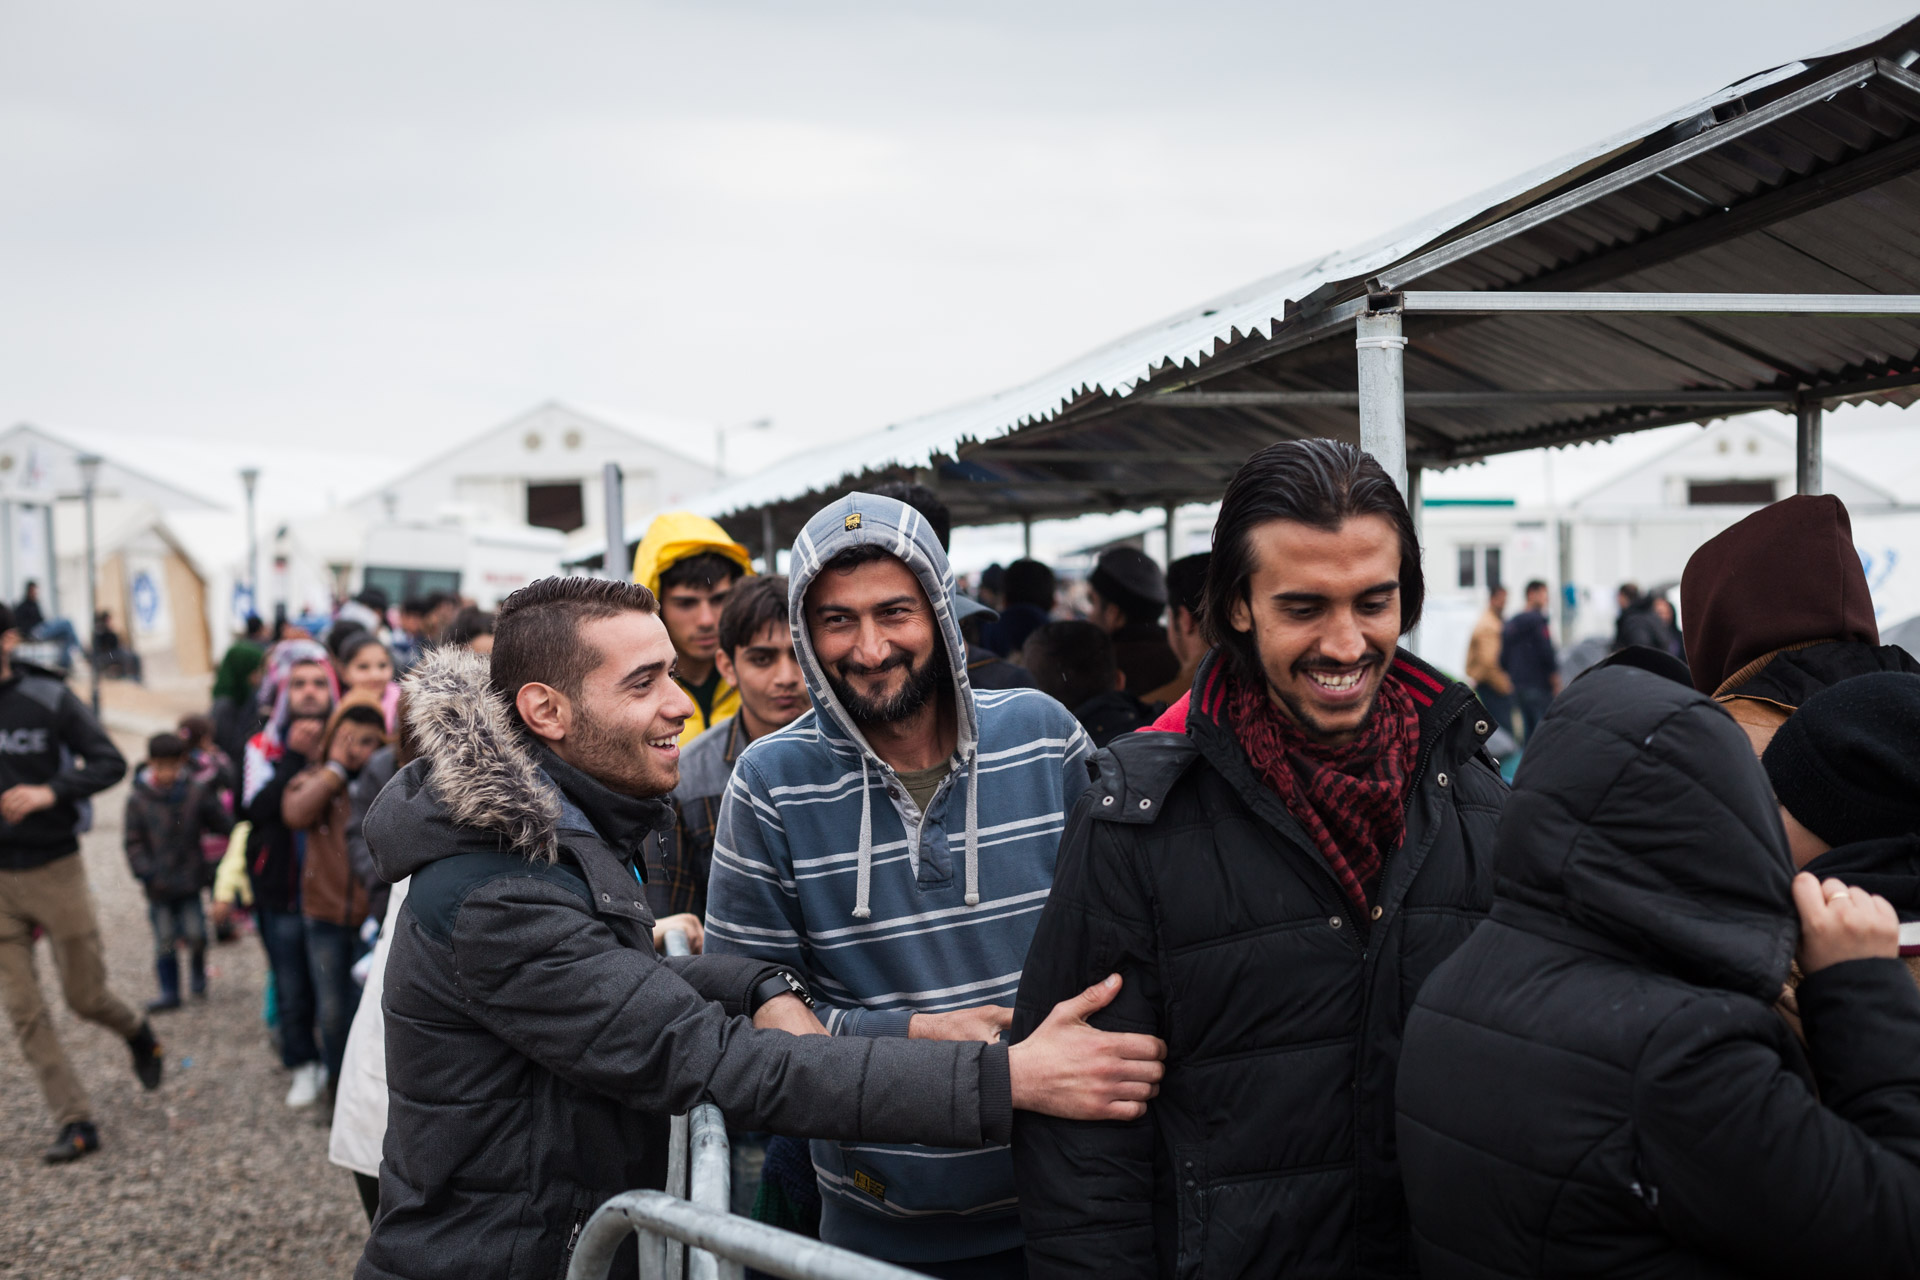 Days in Idomeni are a lot of routine. Basem is appreciated among the other people in line, because he always shares cigarettes and a laugh.